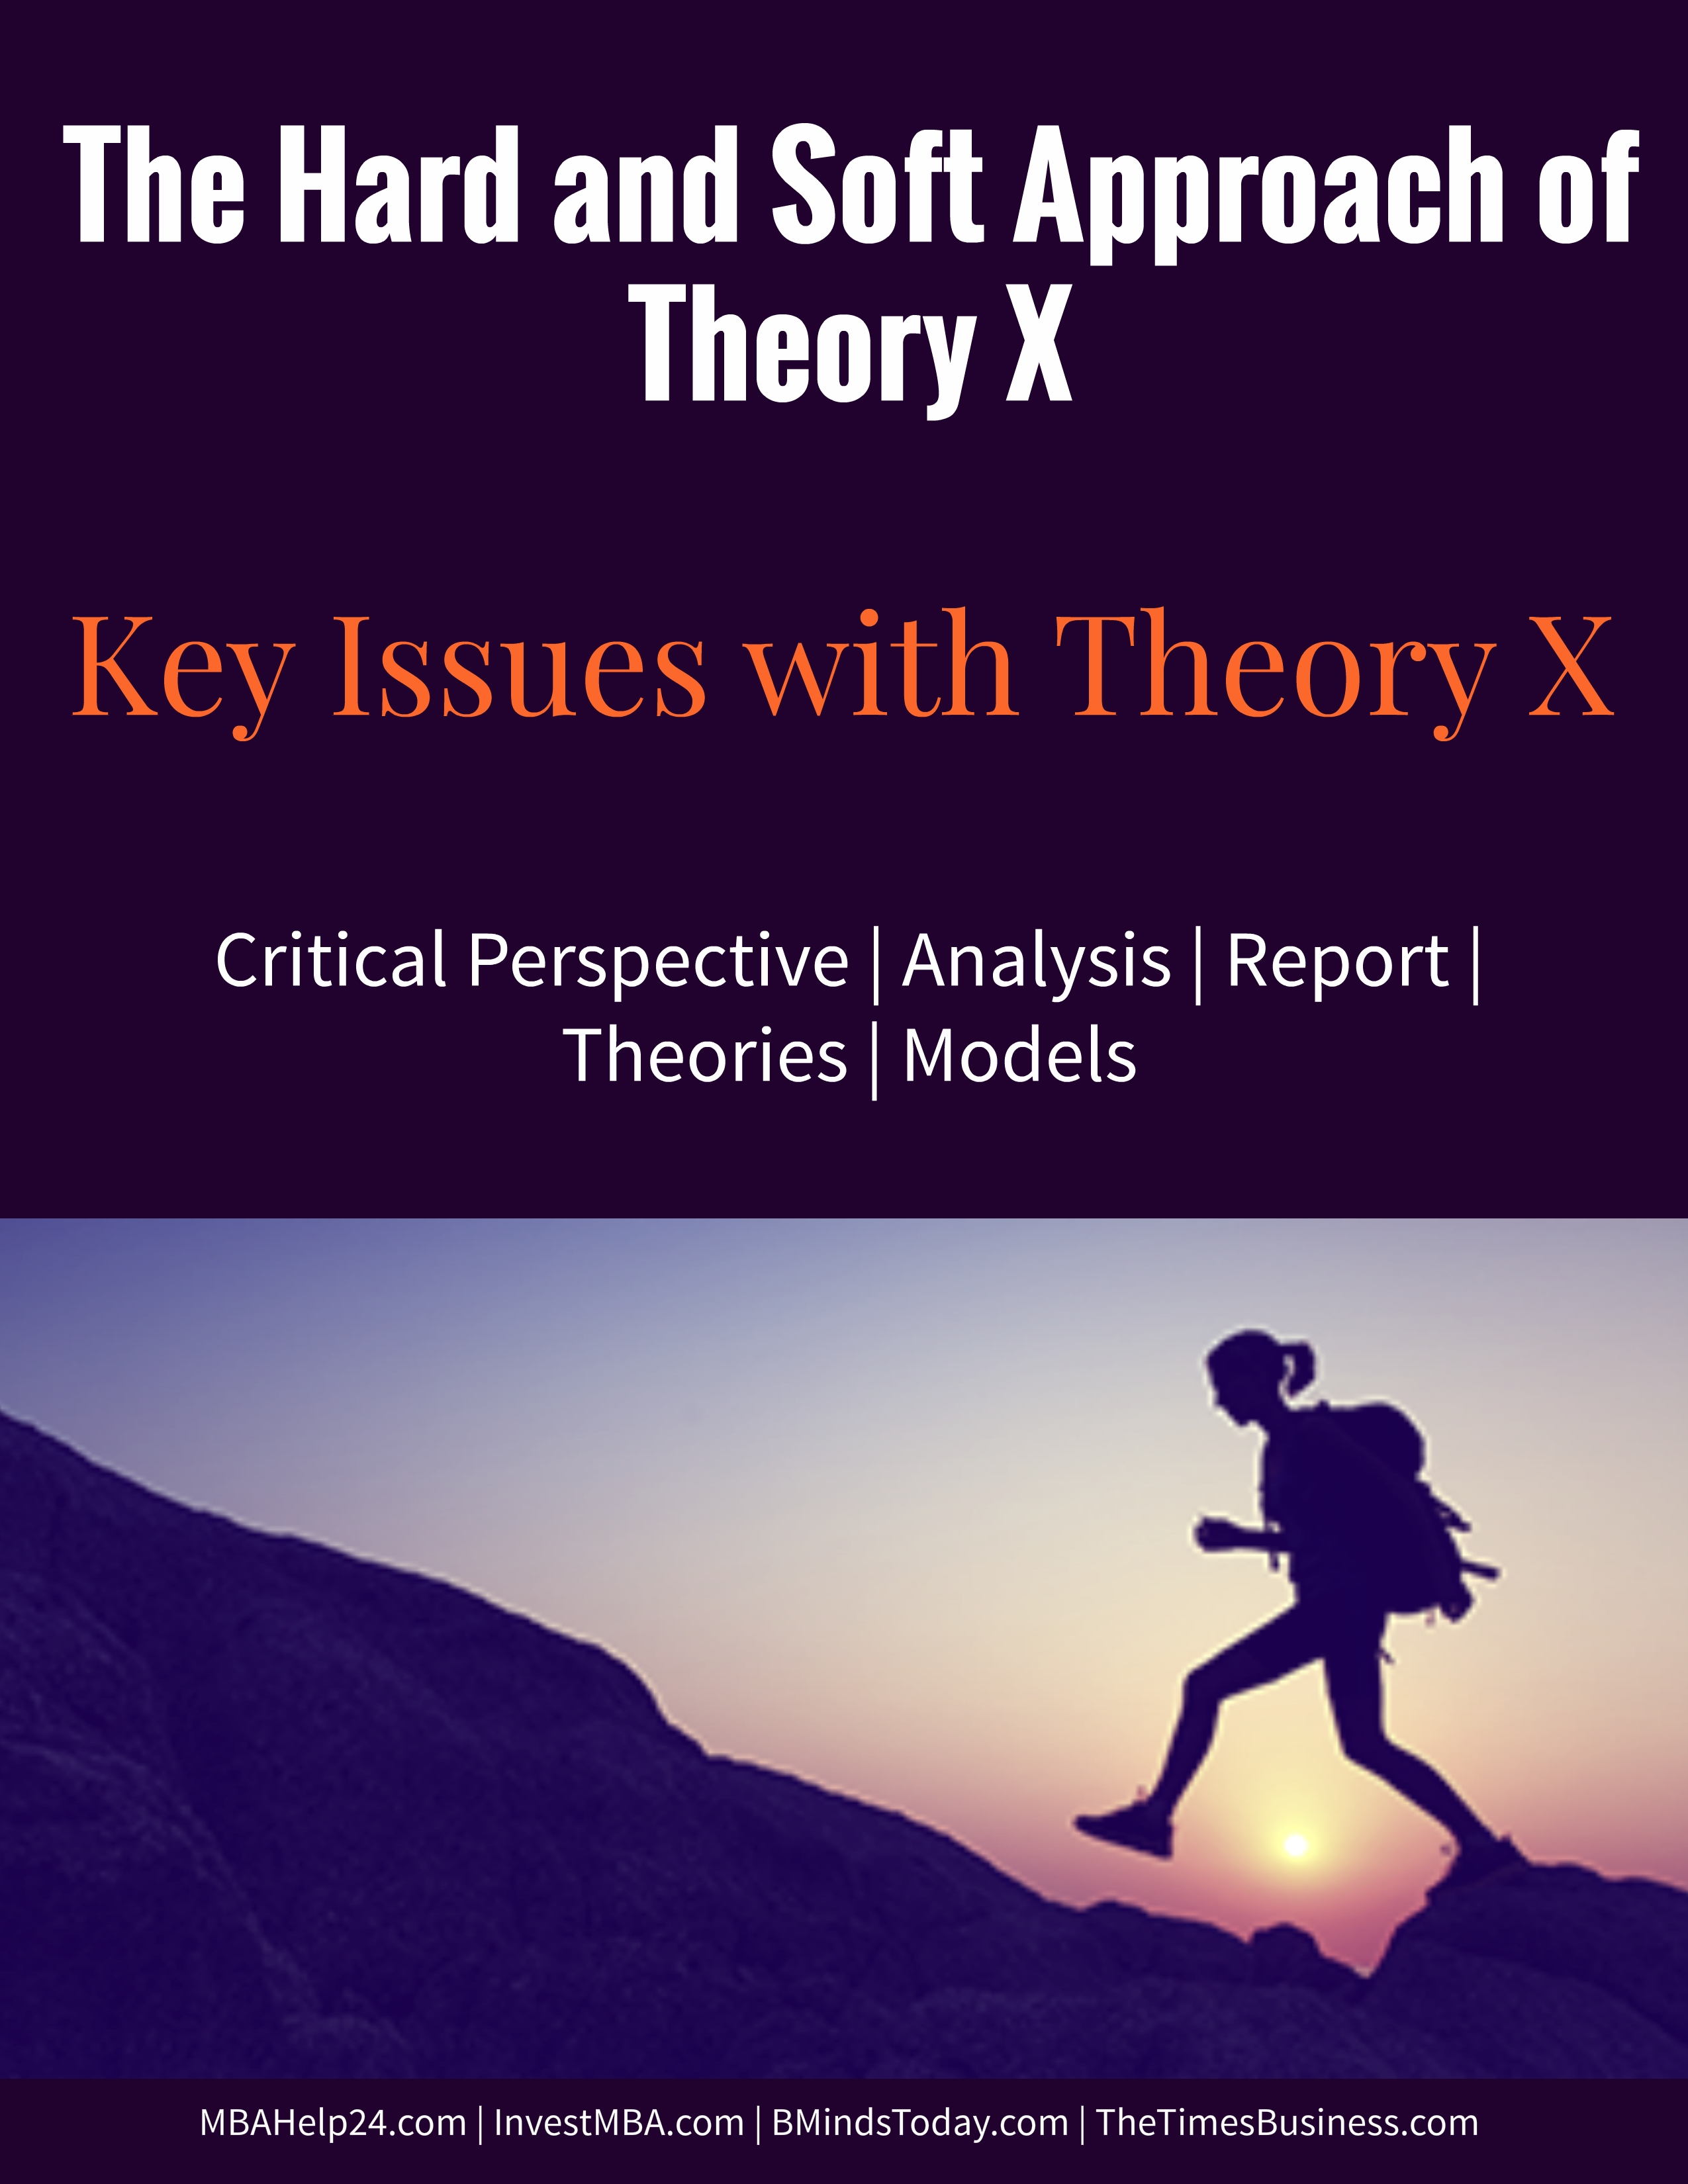 The Hard and Soft Approach of Theory X | Key Issues with Theory X theory x The Hard and Soft Approach of Theory X | Key Issues with Theory X soft and hard theory x the hard and soft approach of theory x The Hard and Soft Approach of Theory X soft and hard theory x